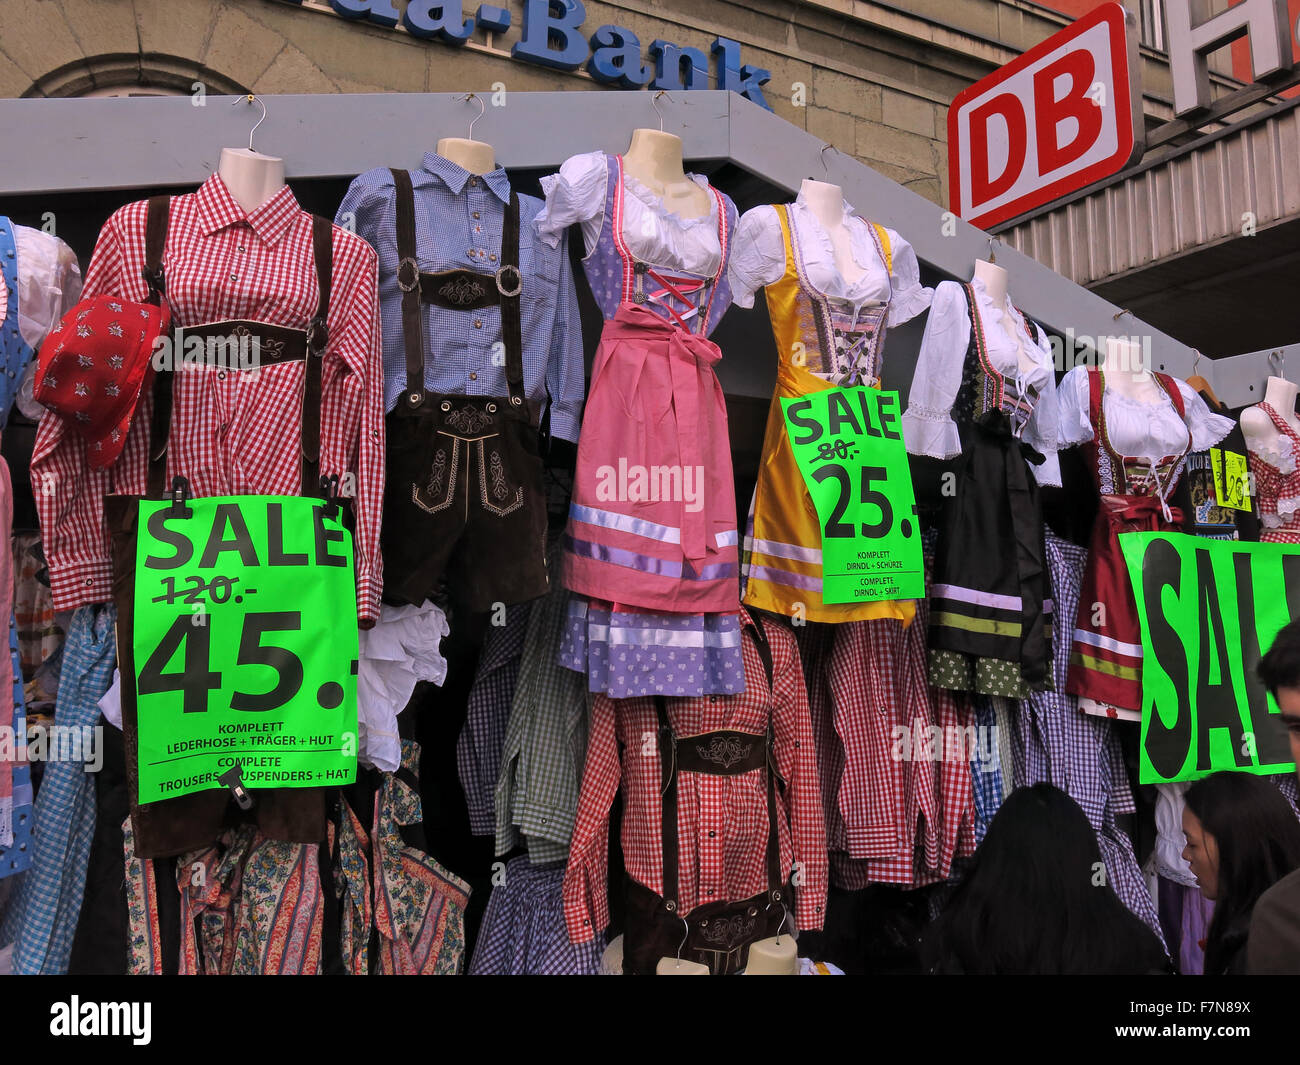 Clothing for Oktoberfest,at Hauptbahnhof Munich, reduced last weekend,120 to 45 Euros - Stock Image